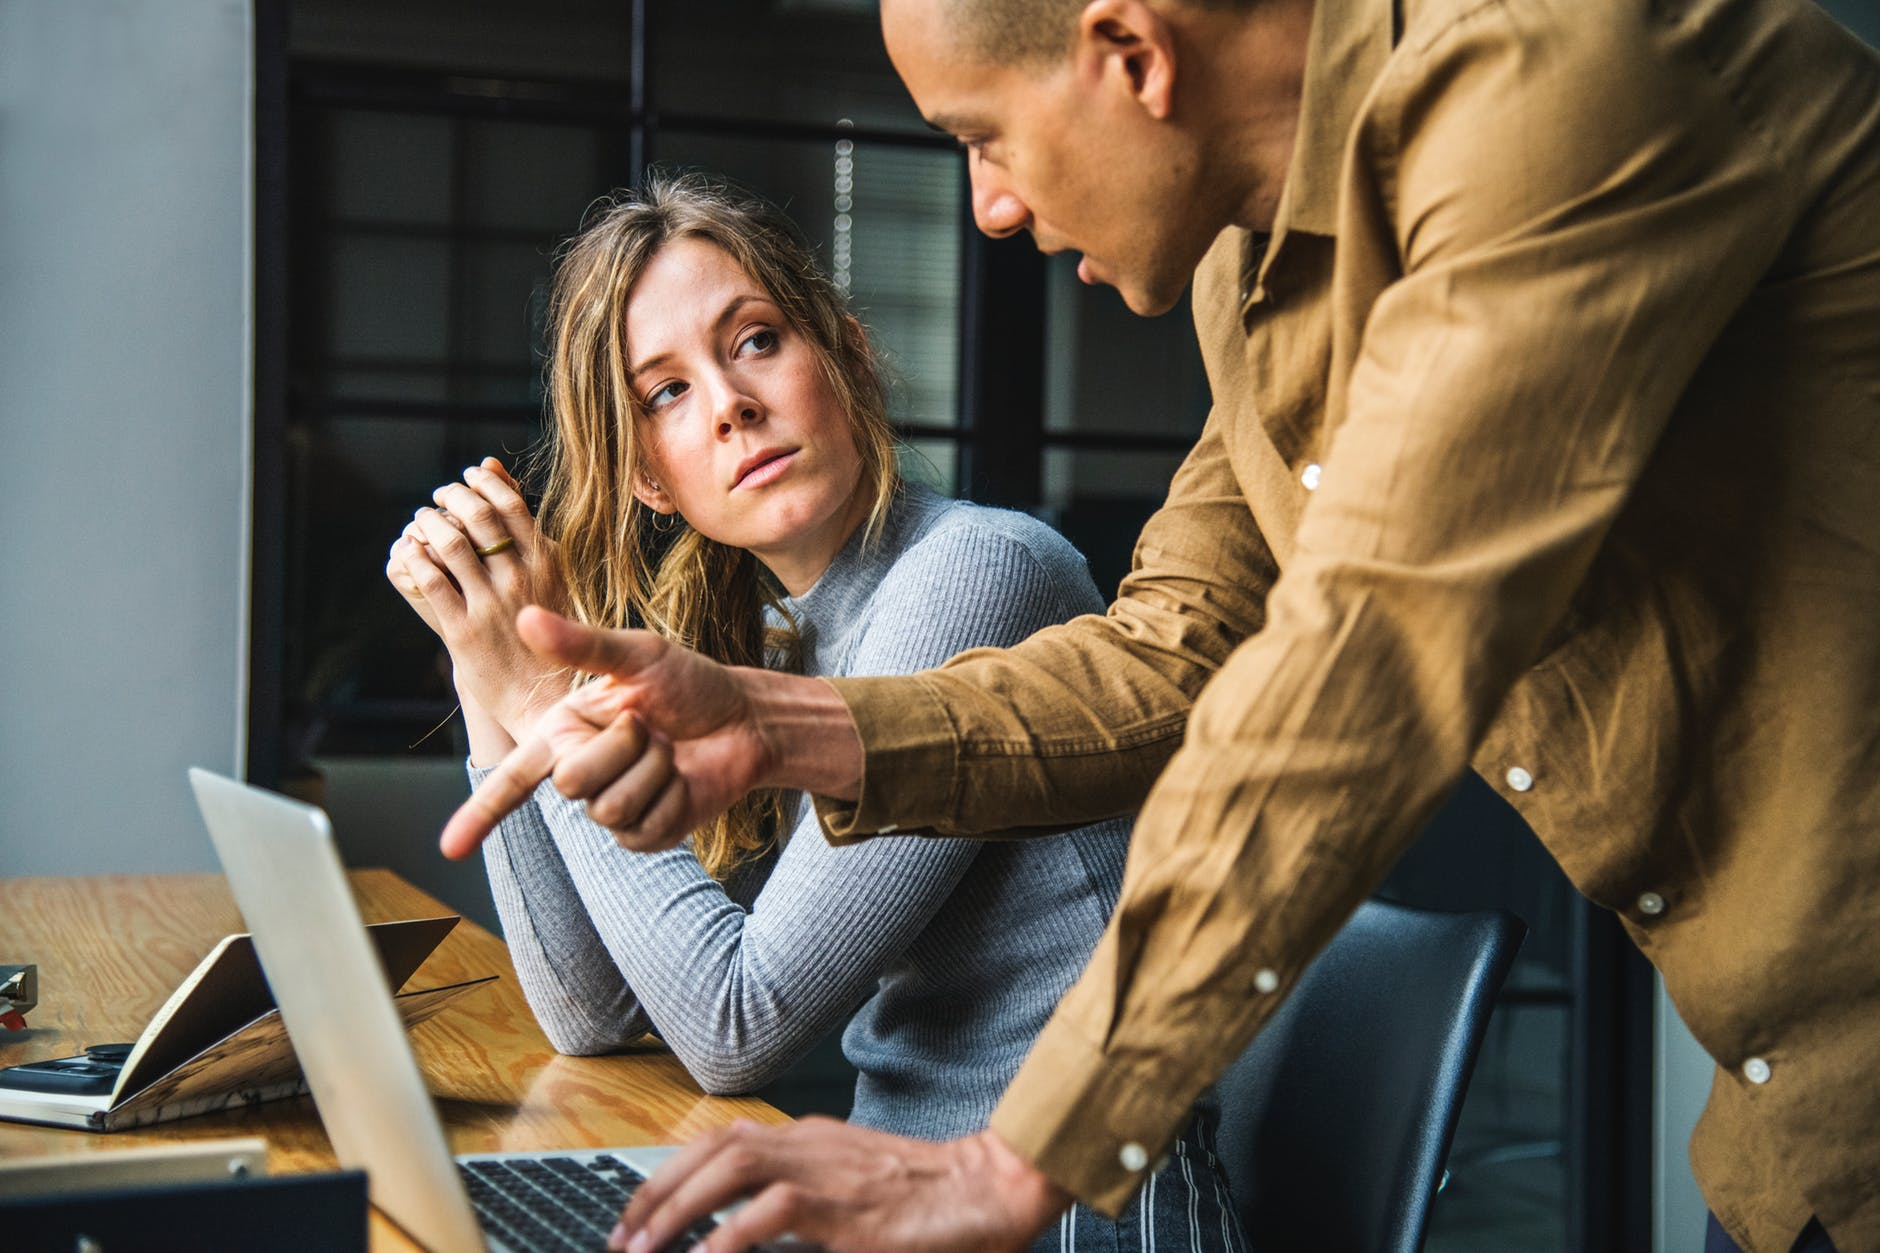 man in brown long sleeved button up shirt standing while using gray laptop computer on brown wooden table beside woman in gray long sleeved shirt sitting